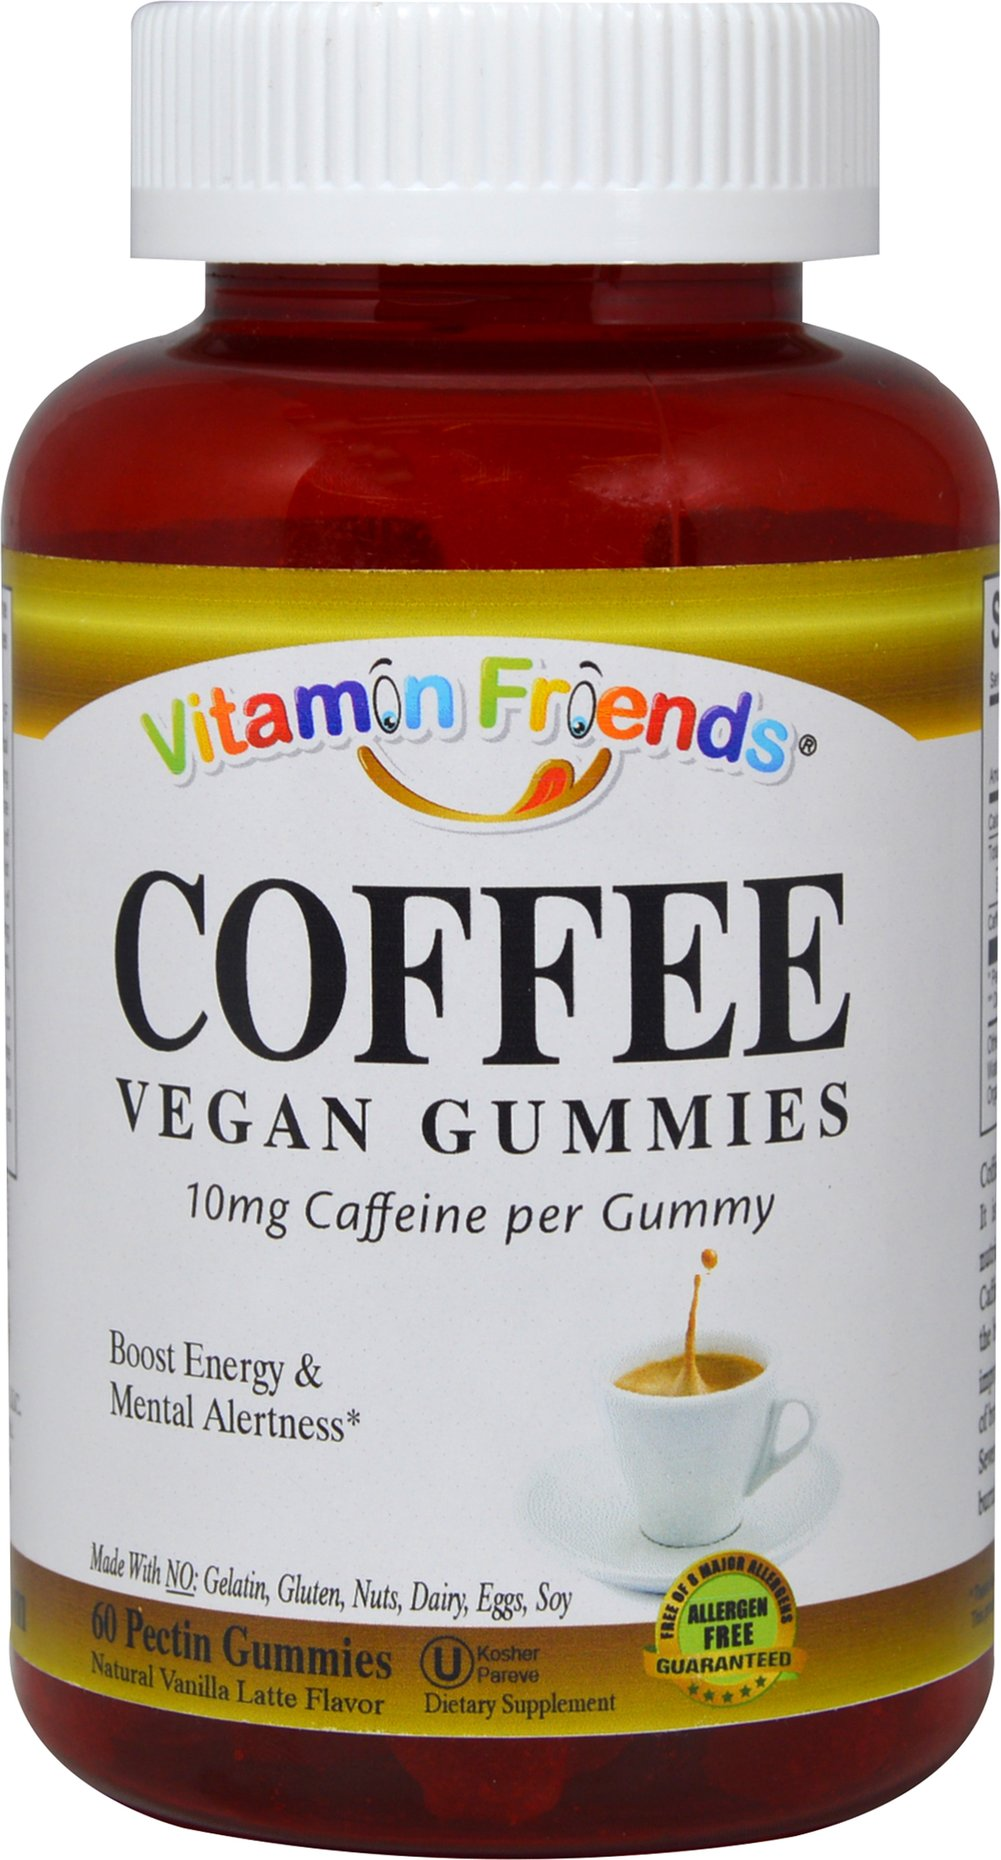 Coffee Vegan Gummies Vanilla Latte Flavor